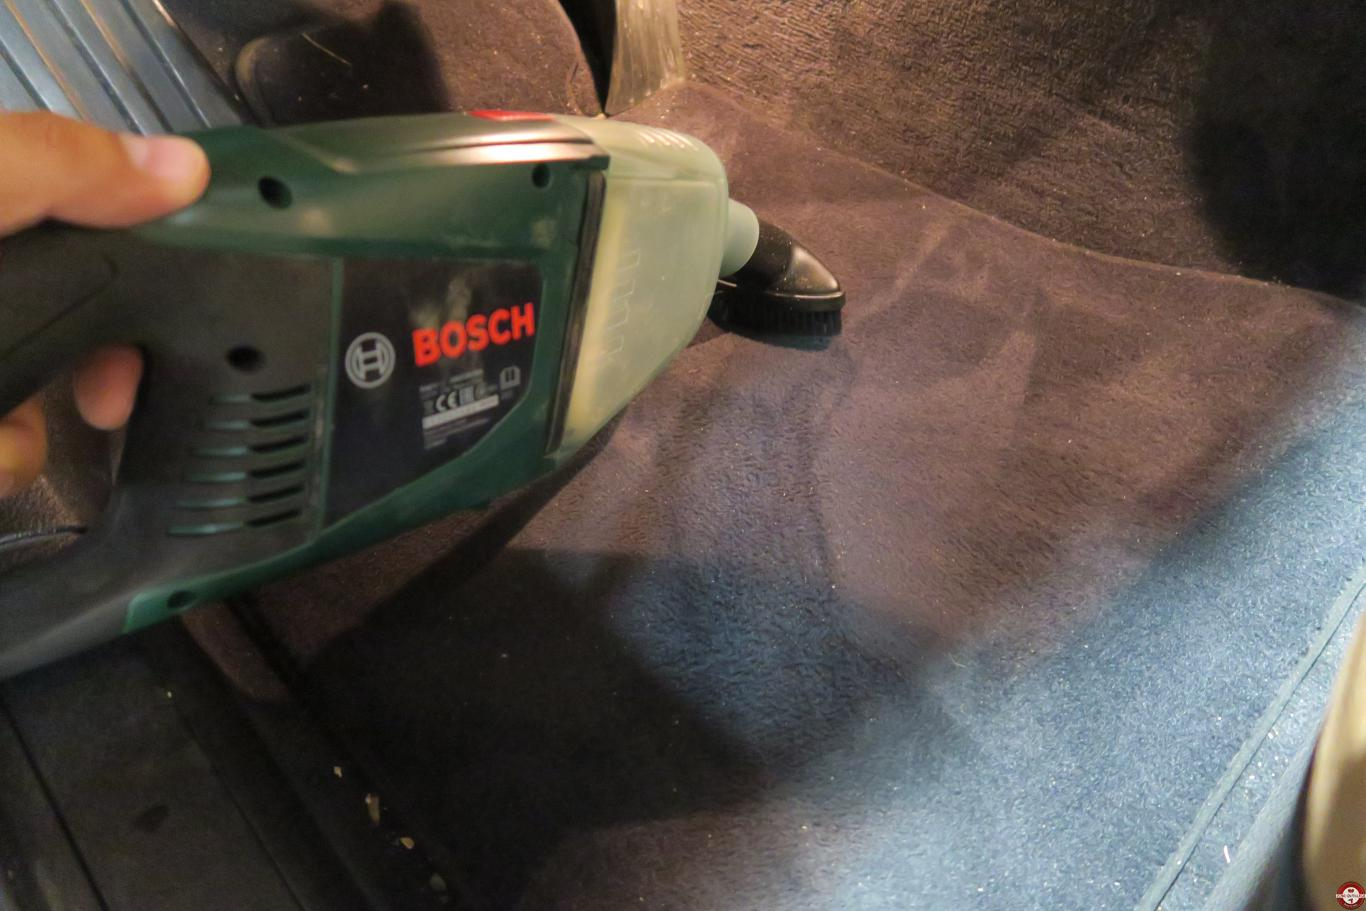 Test aspirateur EasyVac 12 Bosch © Zone Outillage - Benjamin Leharivel